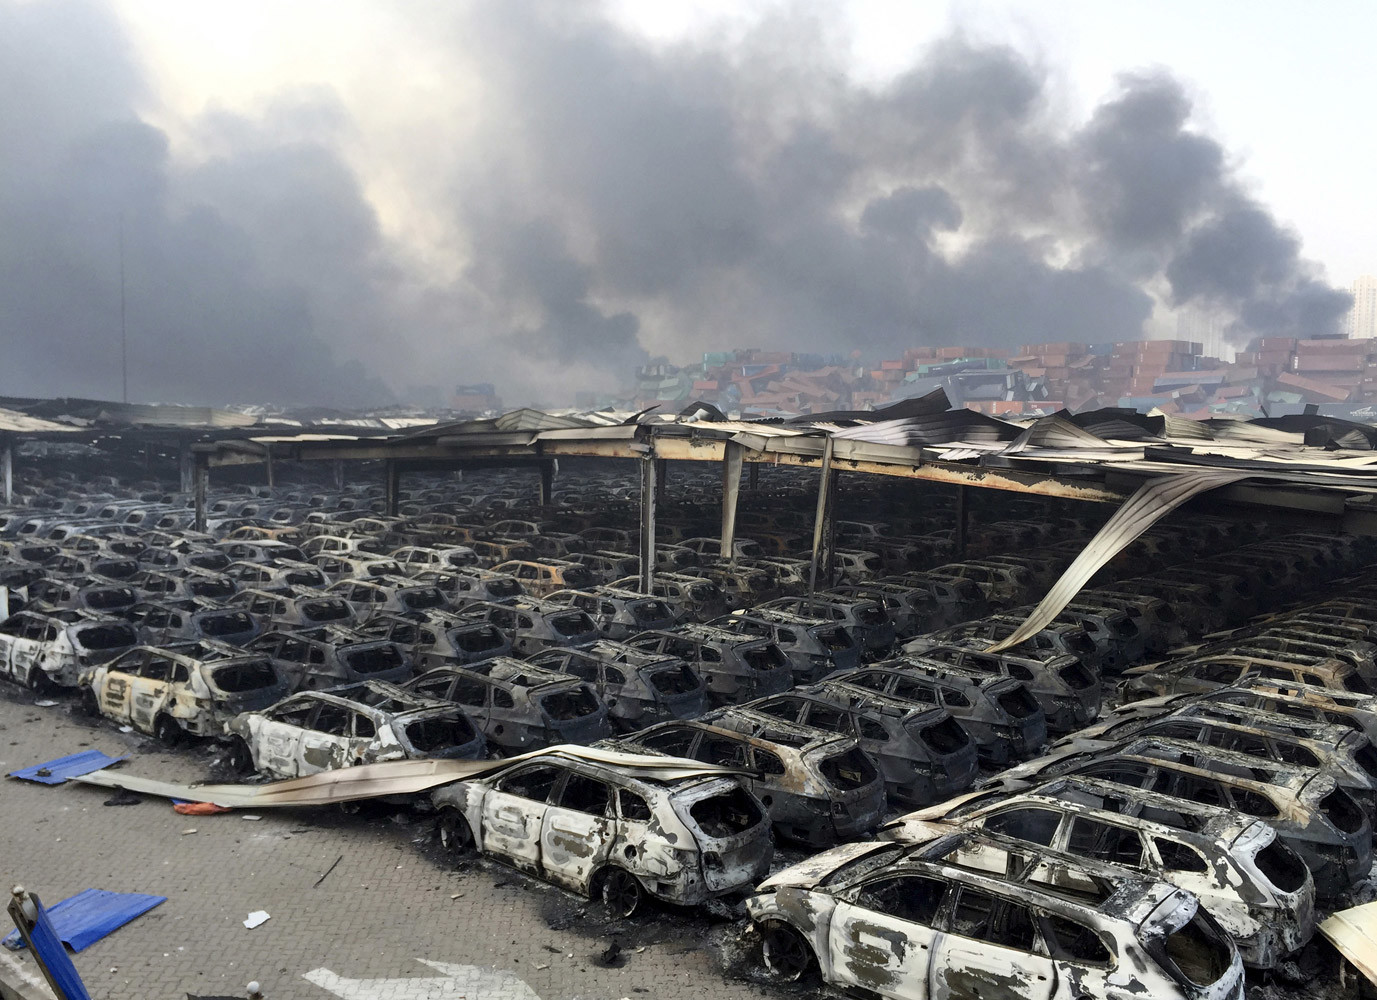 At least 44 have been killed and some 500 injured after two blasts rocked the northeastern Chinese city of Tianjin late Wednesday. China, Tianjin, August 13, 2015 © Stringer